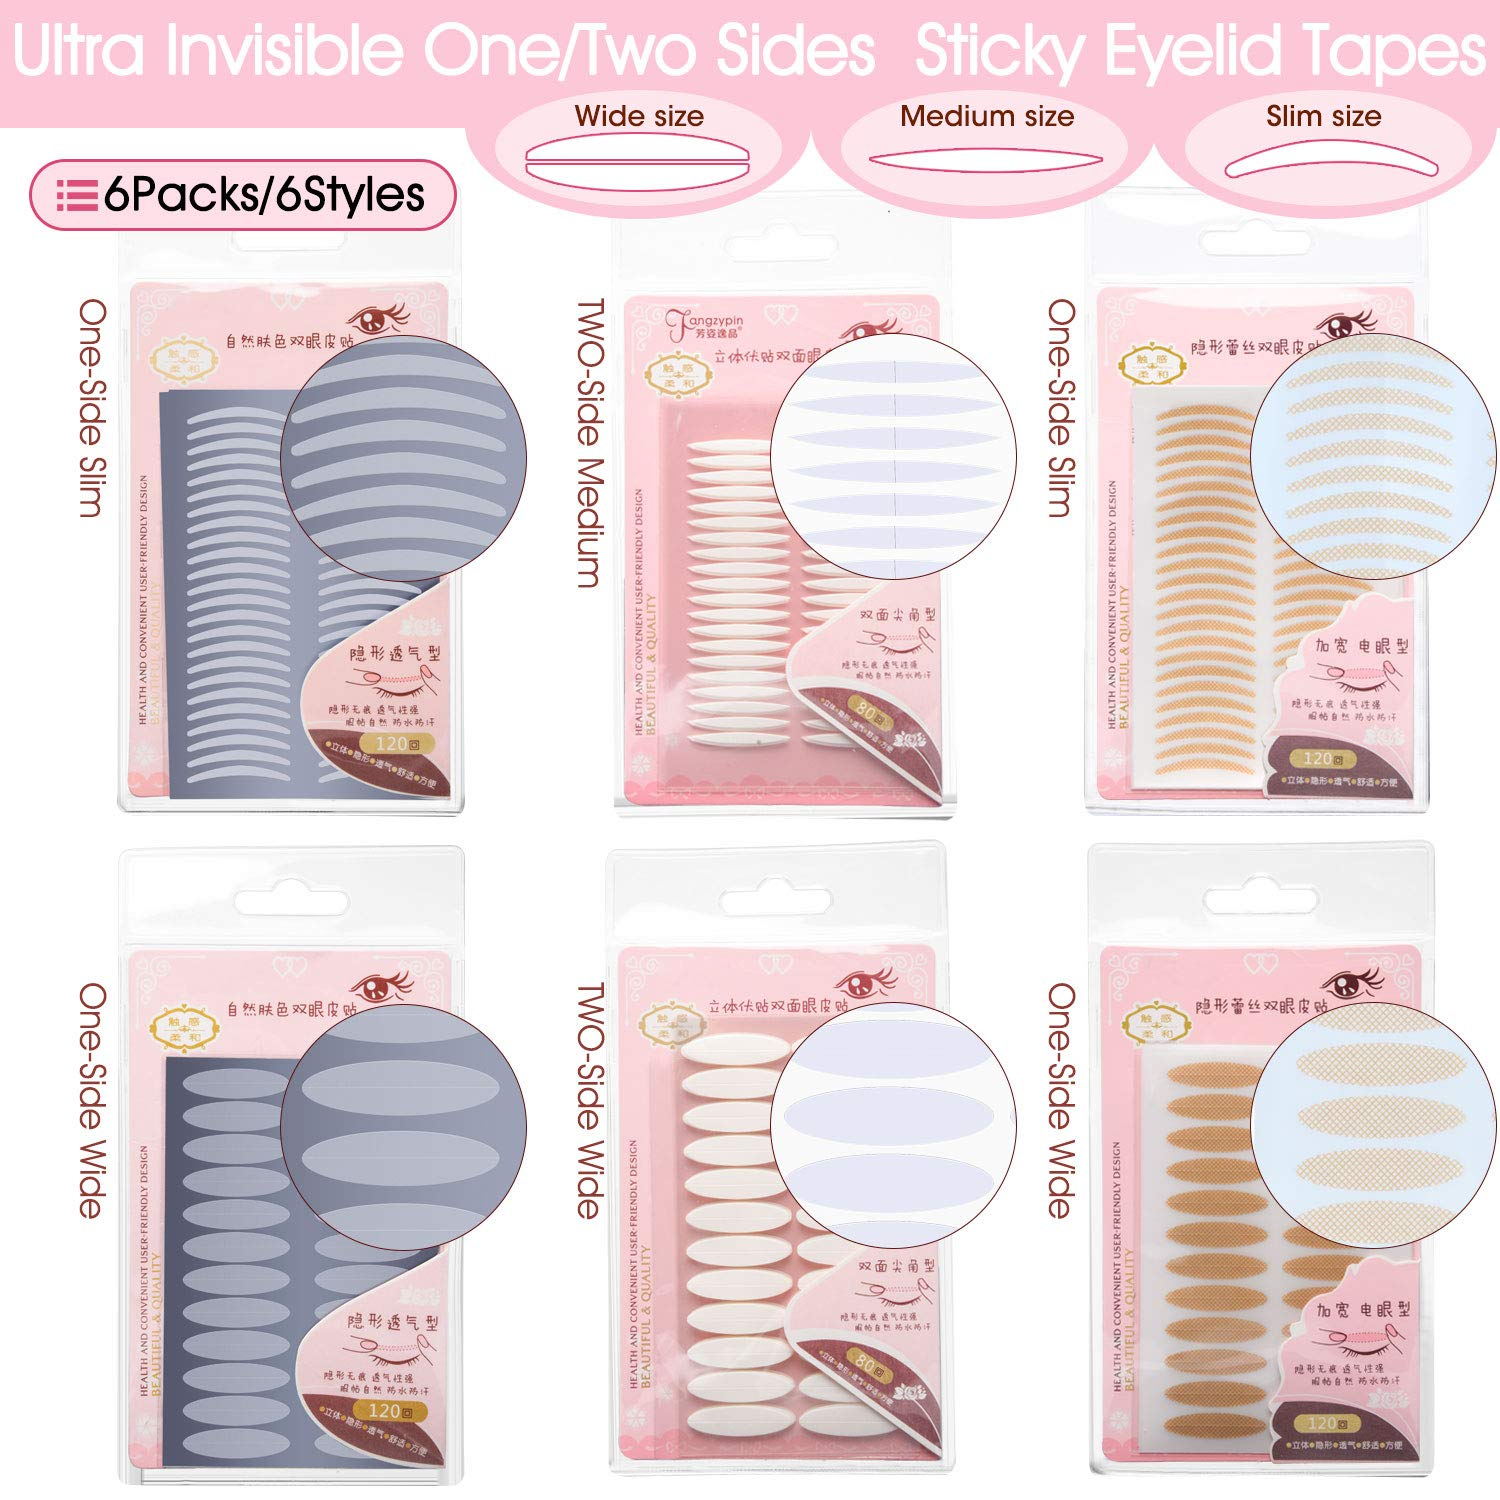 INS 6 Styles 6 Packs Natural Invisible One/Two Sides Sticky Double Eyelid Tapes, Medical-use Fiber Eyelid Strips, Instant lift Eyelid Without Surgery, Perfect for Hooded, Droopy, Uneven, Mono-eyelids